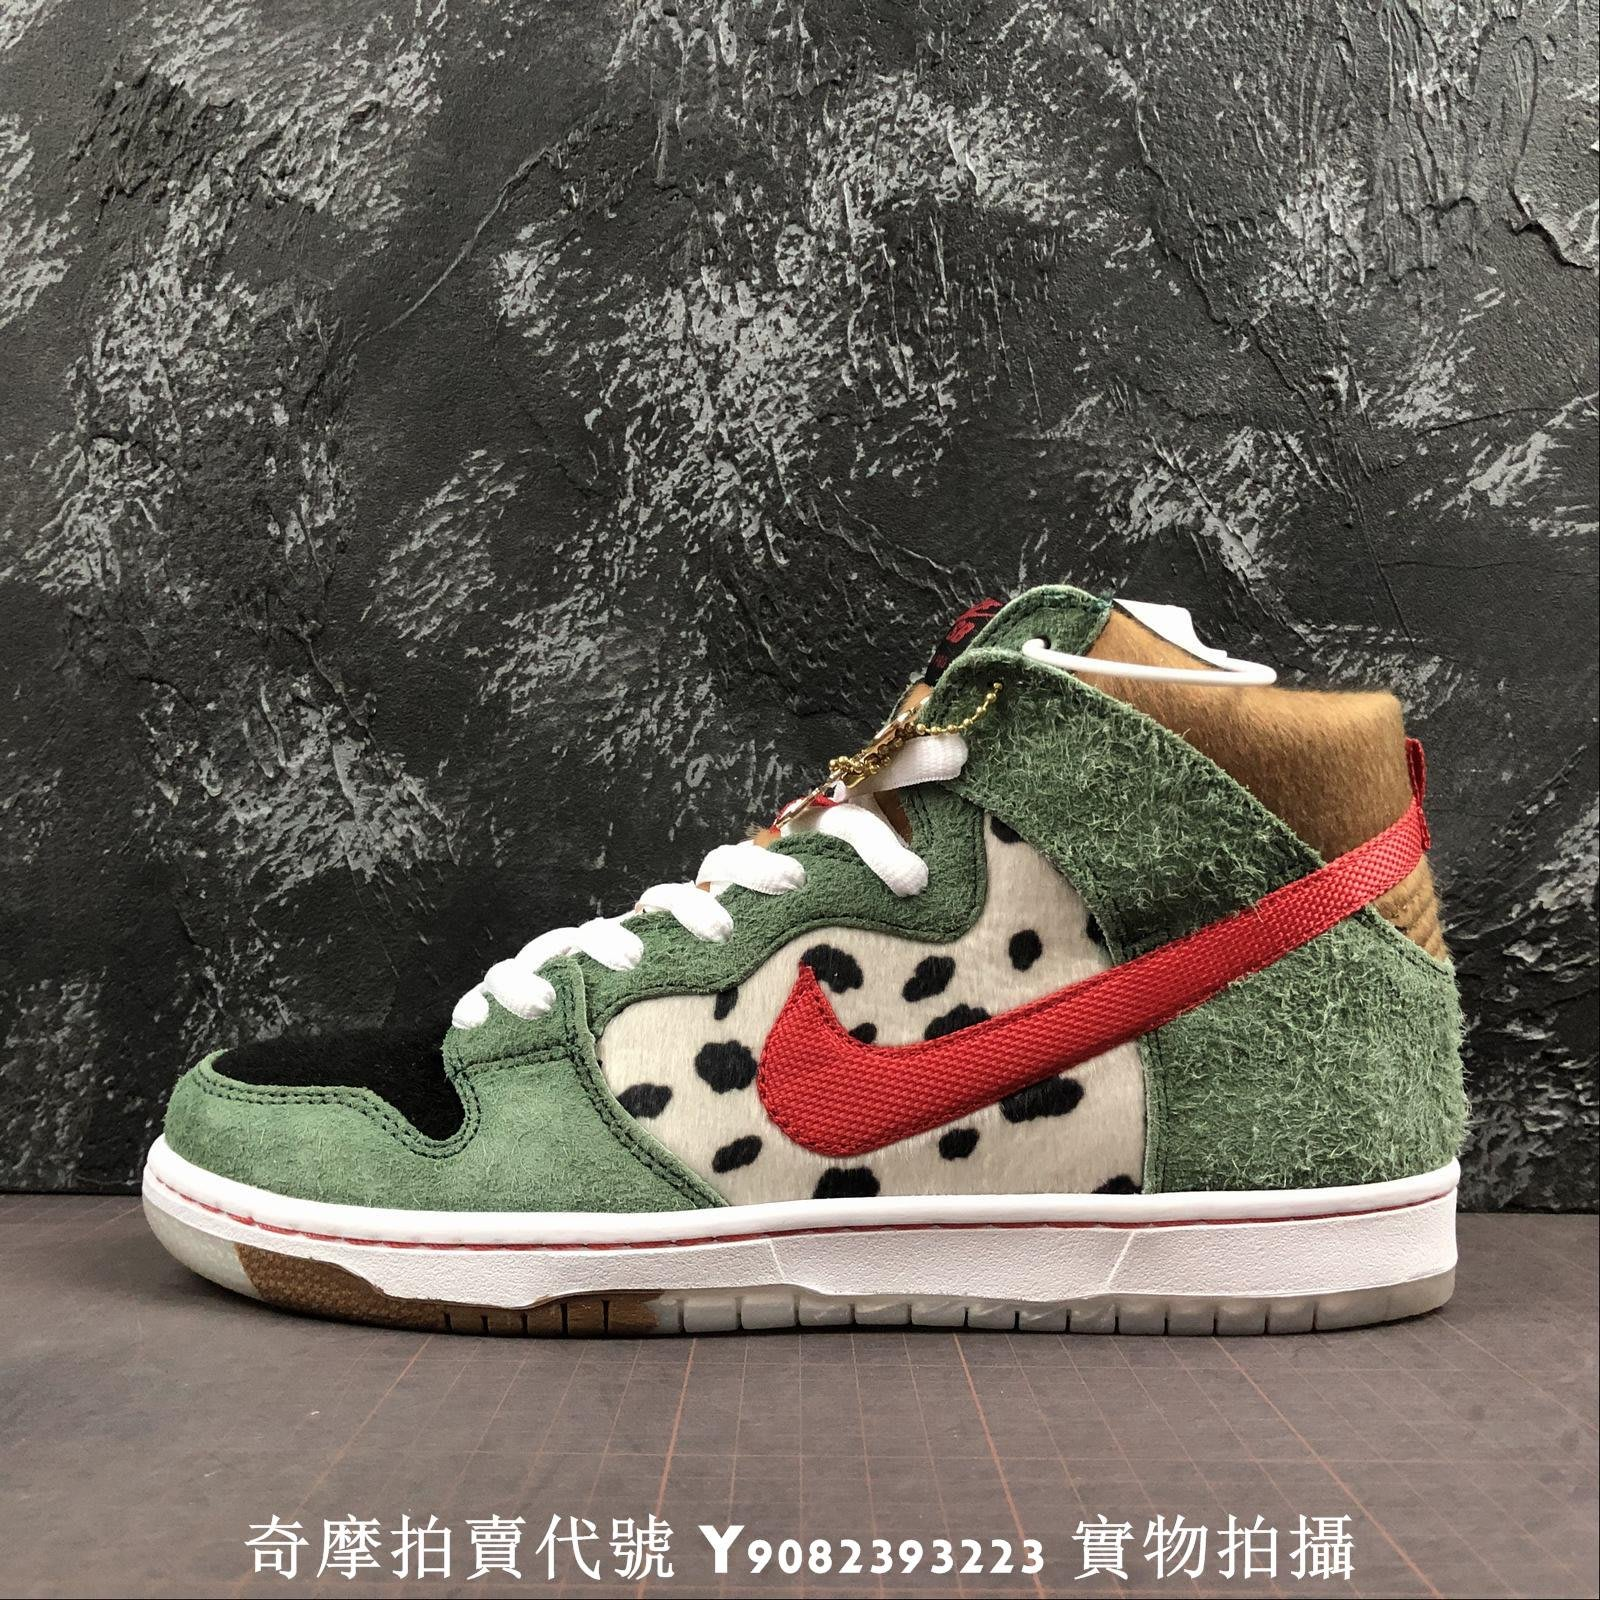 nike dunk premiums